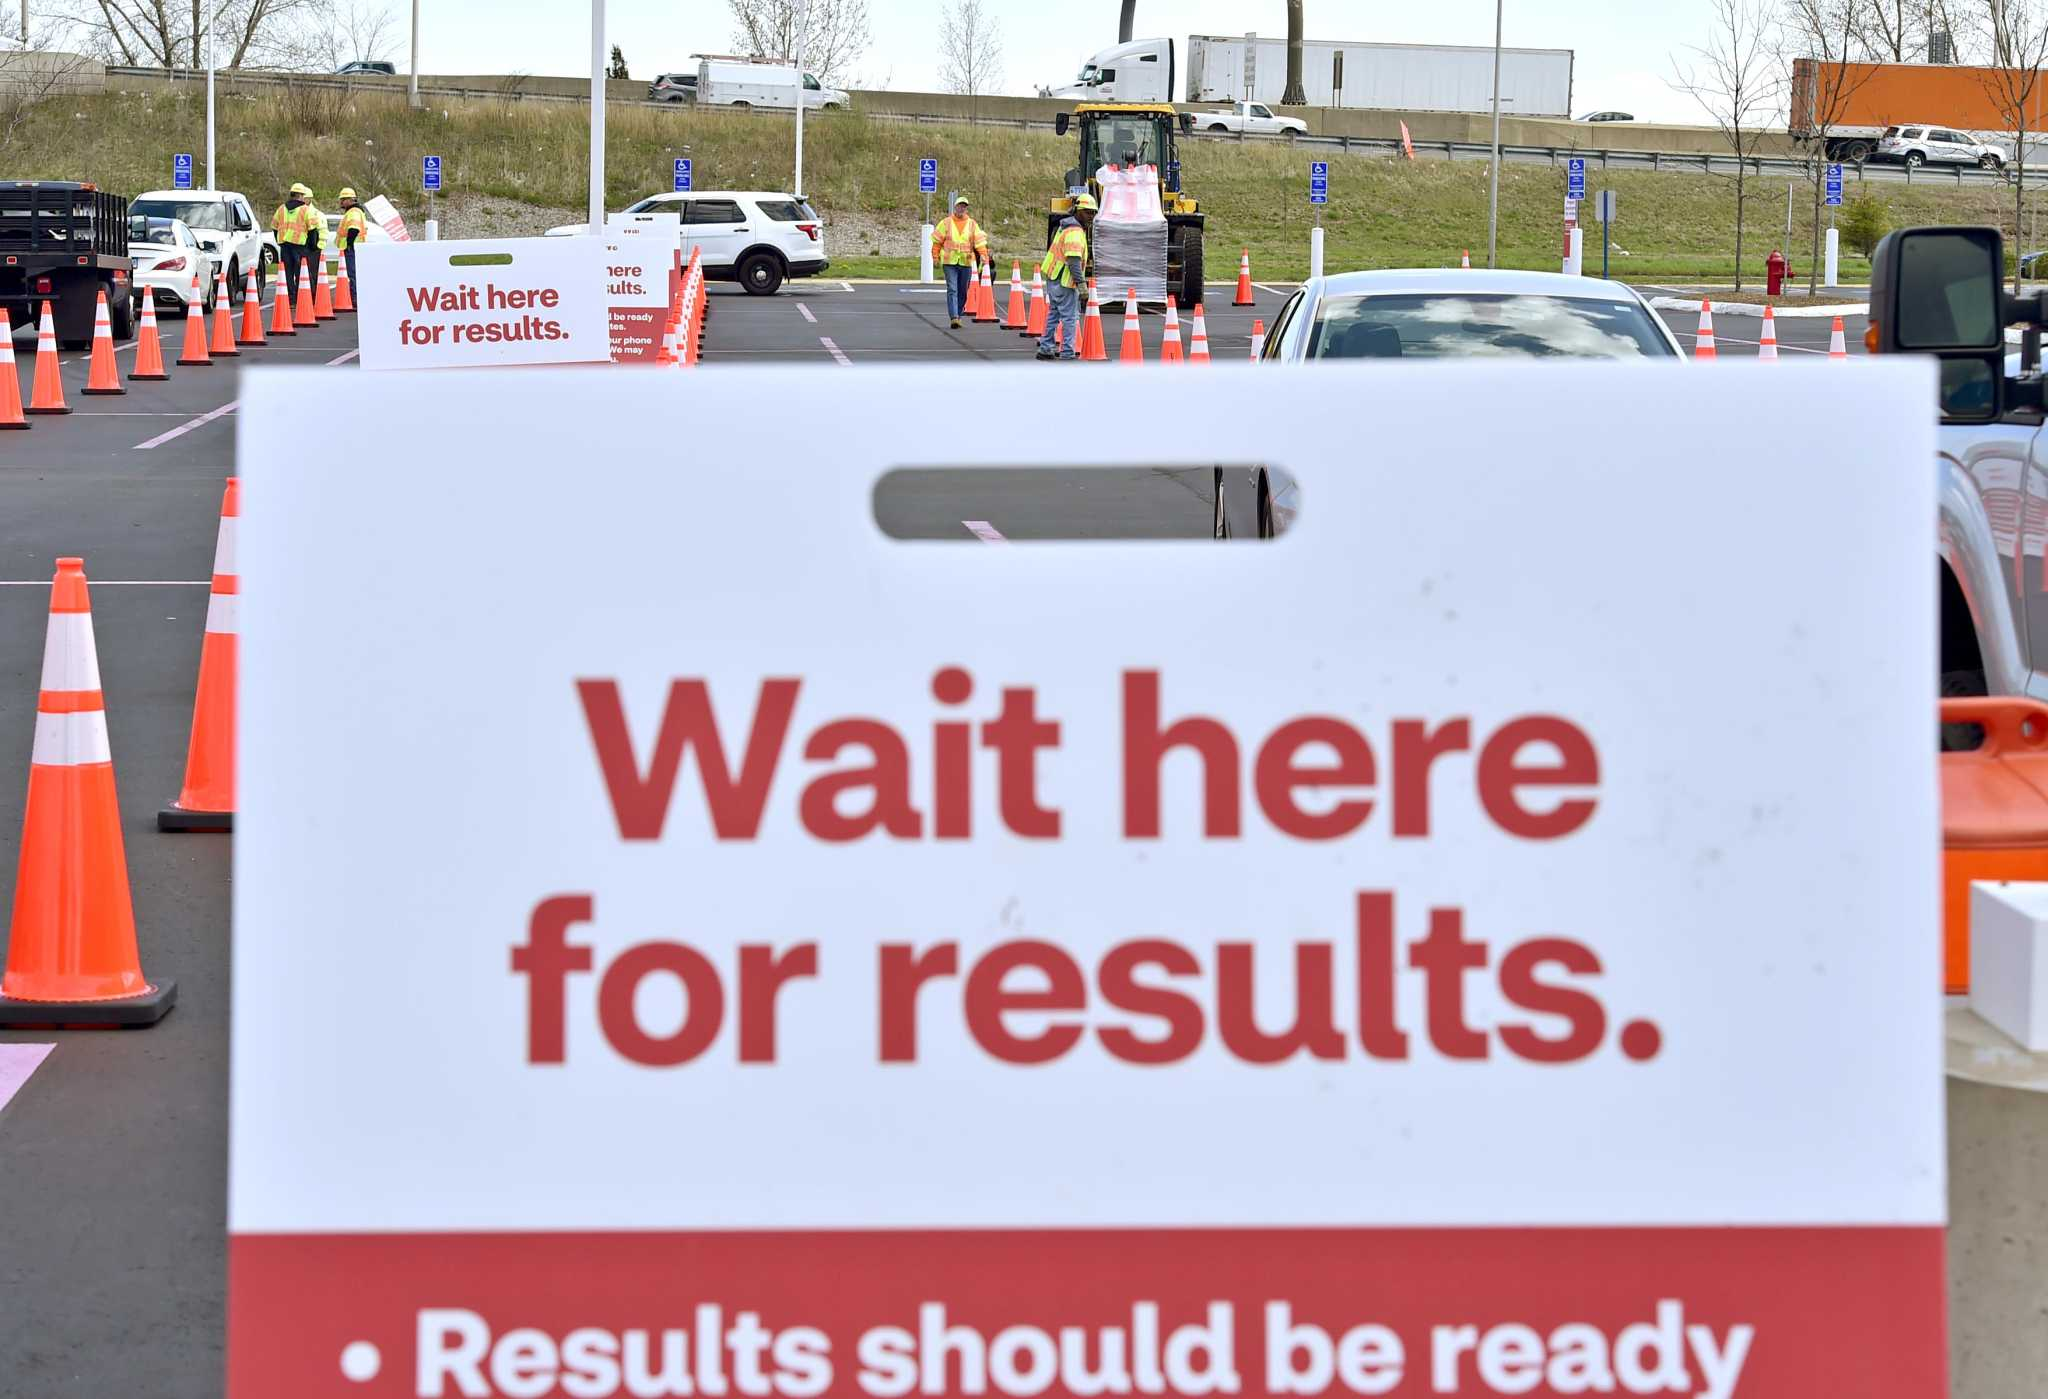 Cvs Health Expands Coronavirus Test Sites At Stores To Stamford Danbury Still None In Bridgeport Ctinsider Com